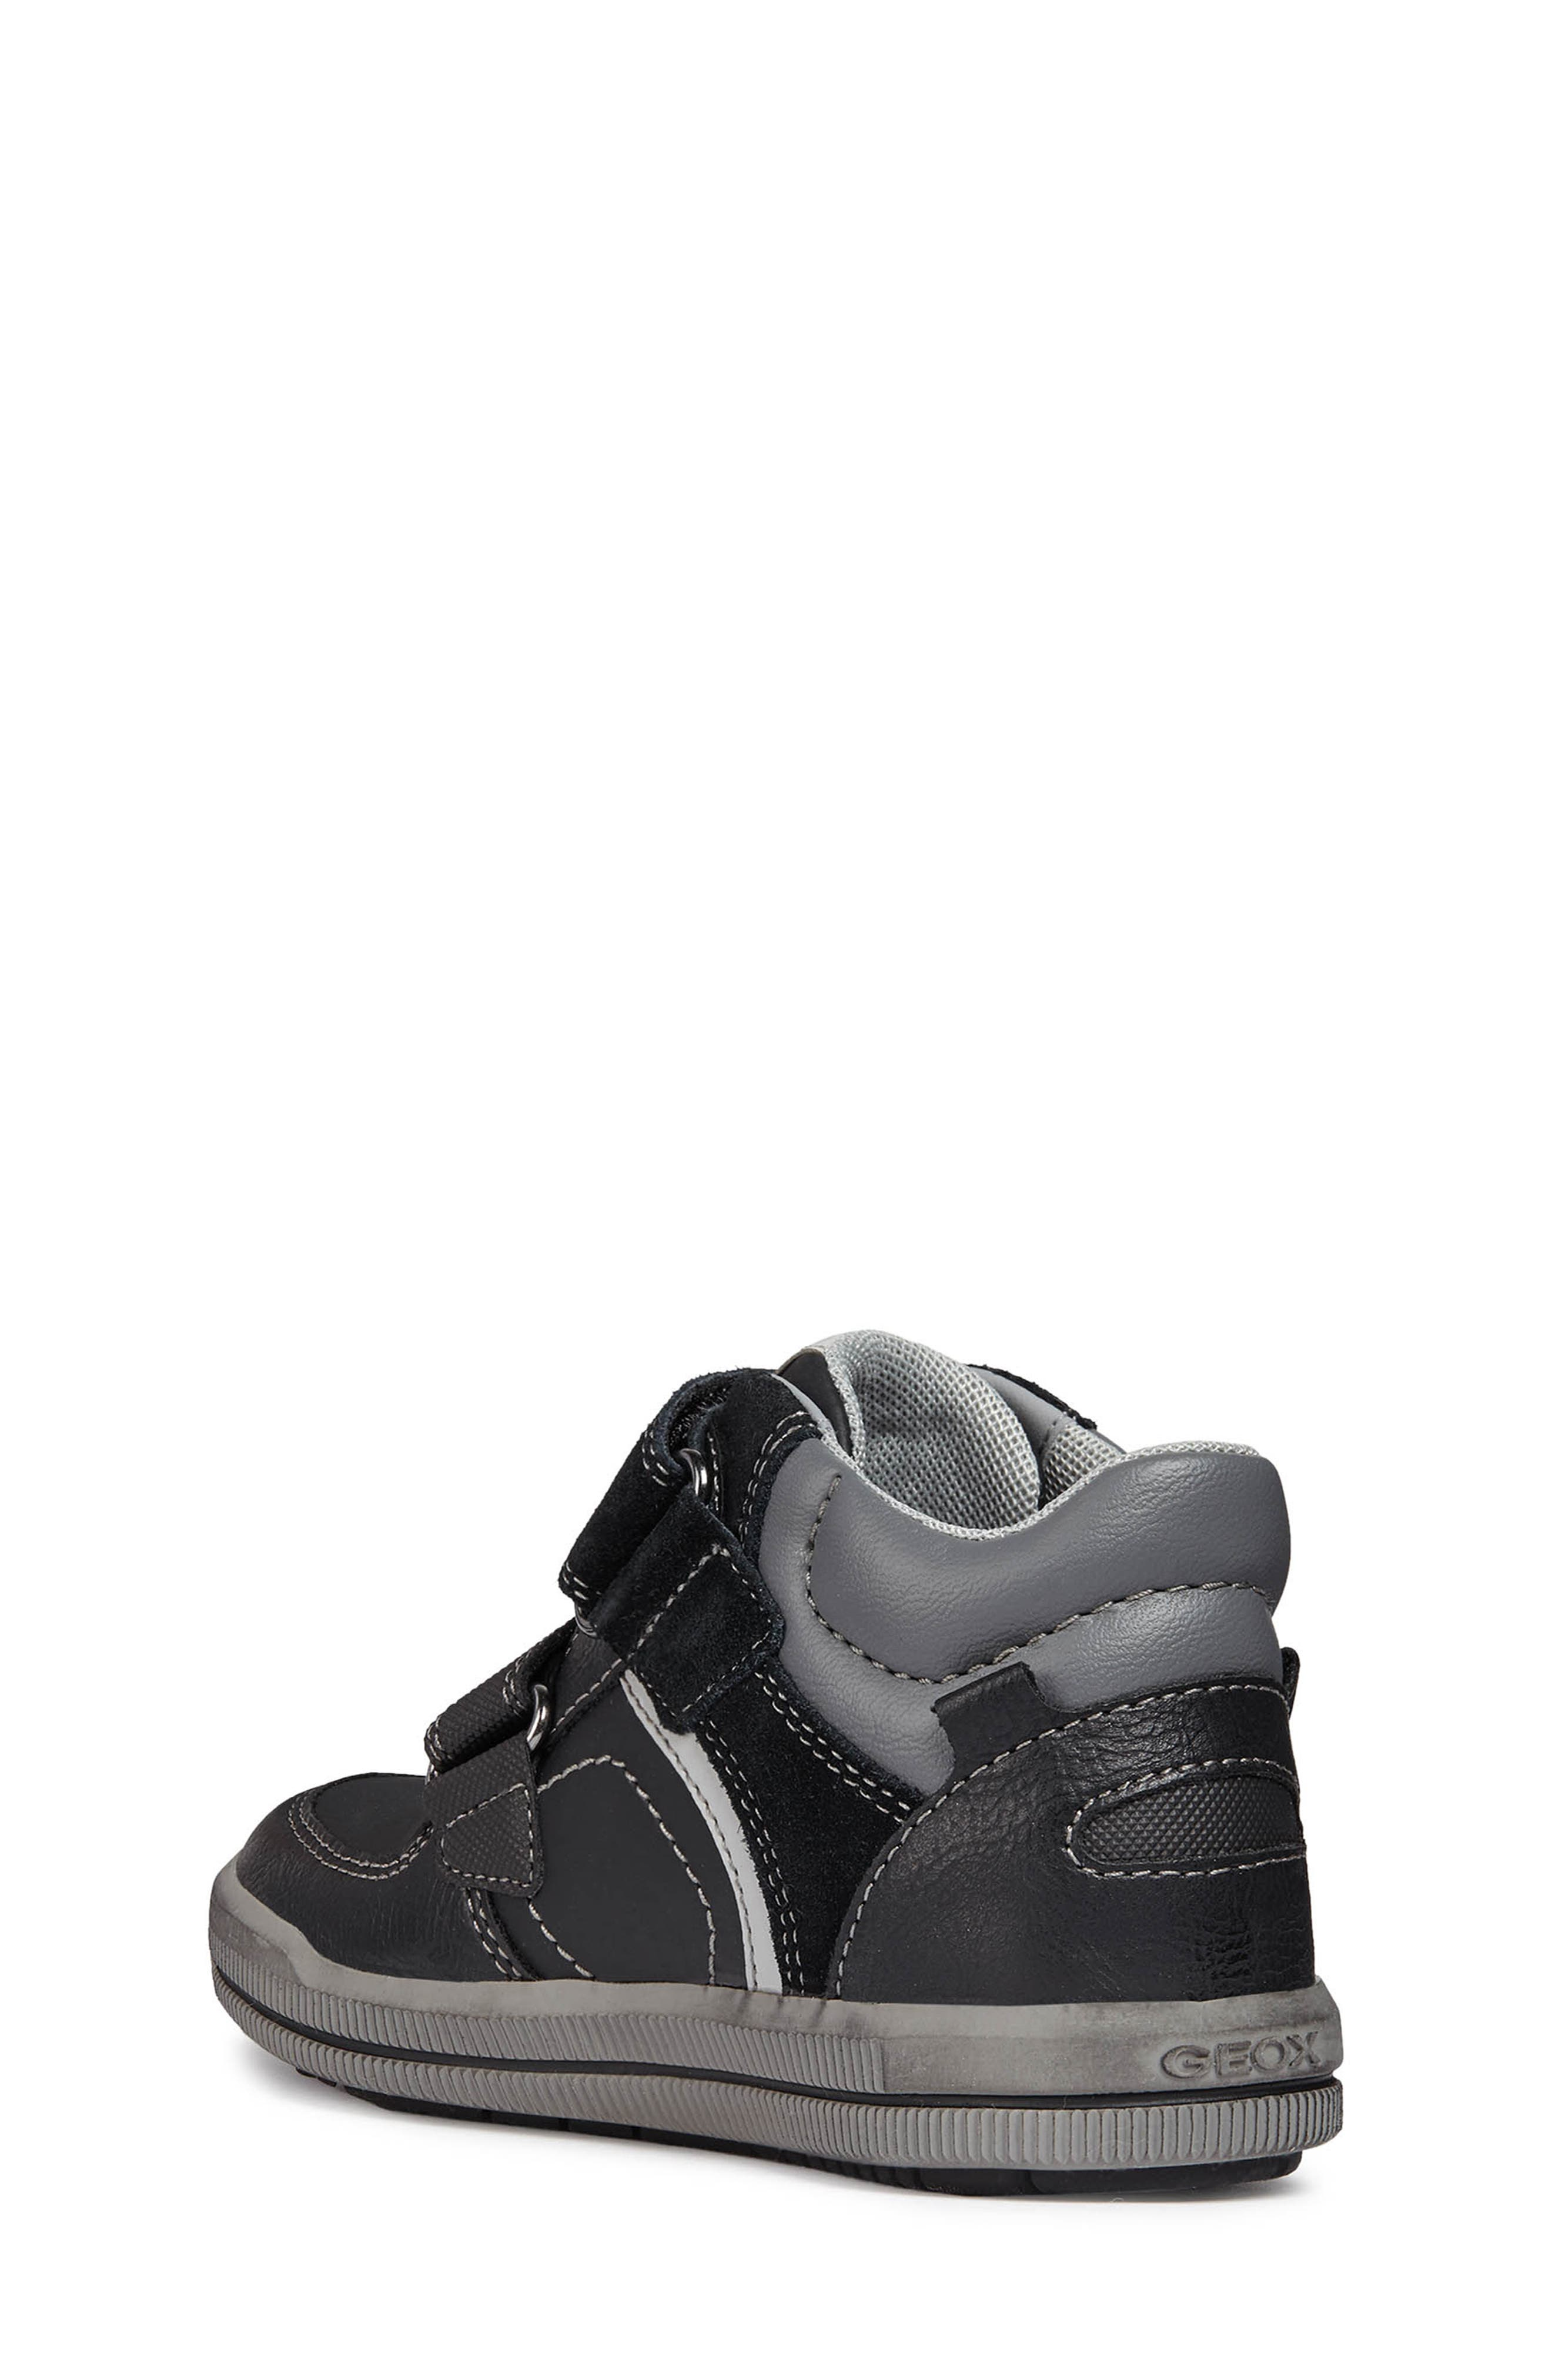 Arzach High-Top Sneaker,                             Alternate thumbnail 2, color,                             BLACK/DARK GREY